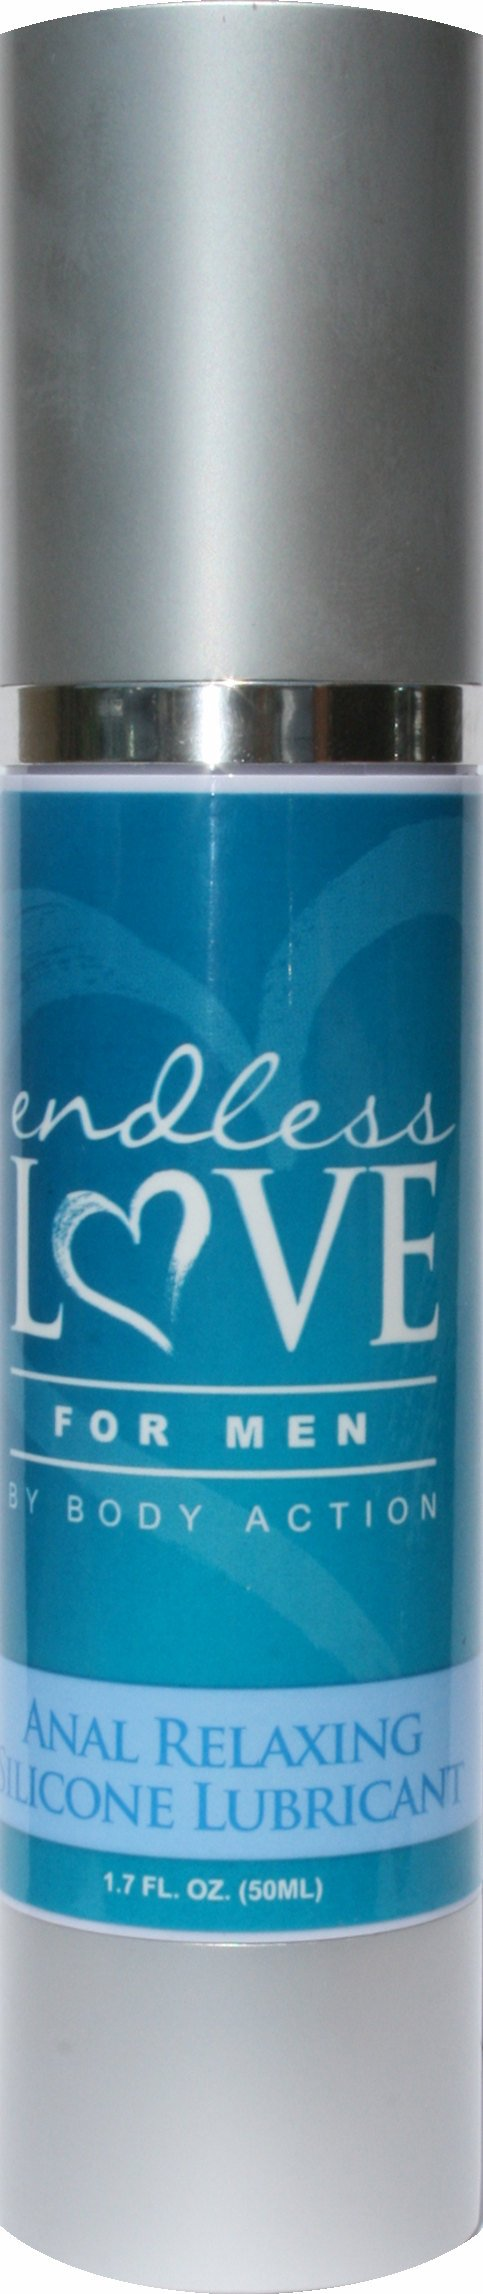 Endless Love for Men Anal Relaxing Silicone Lube 1.7 oz